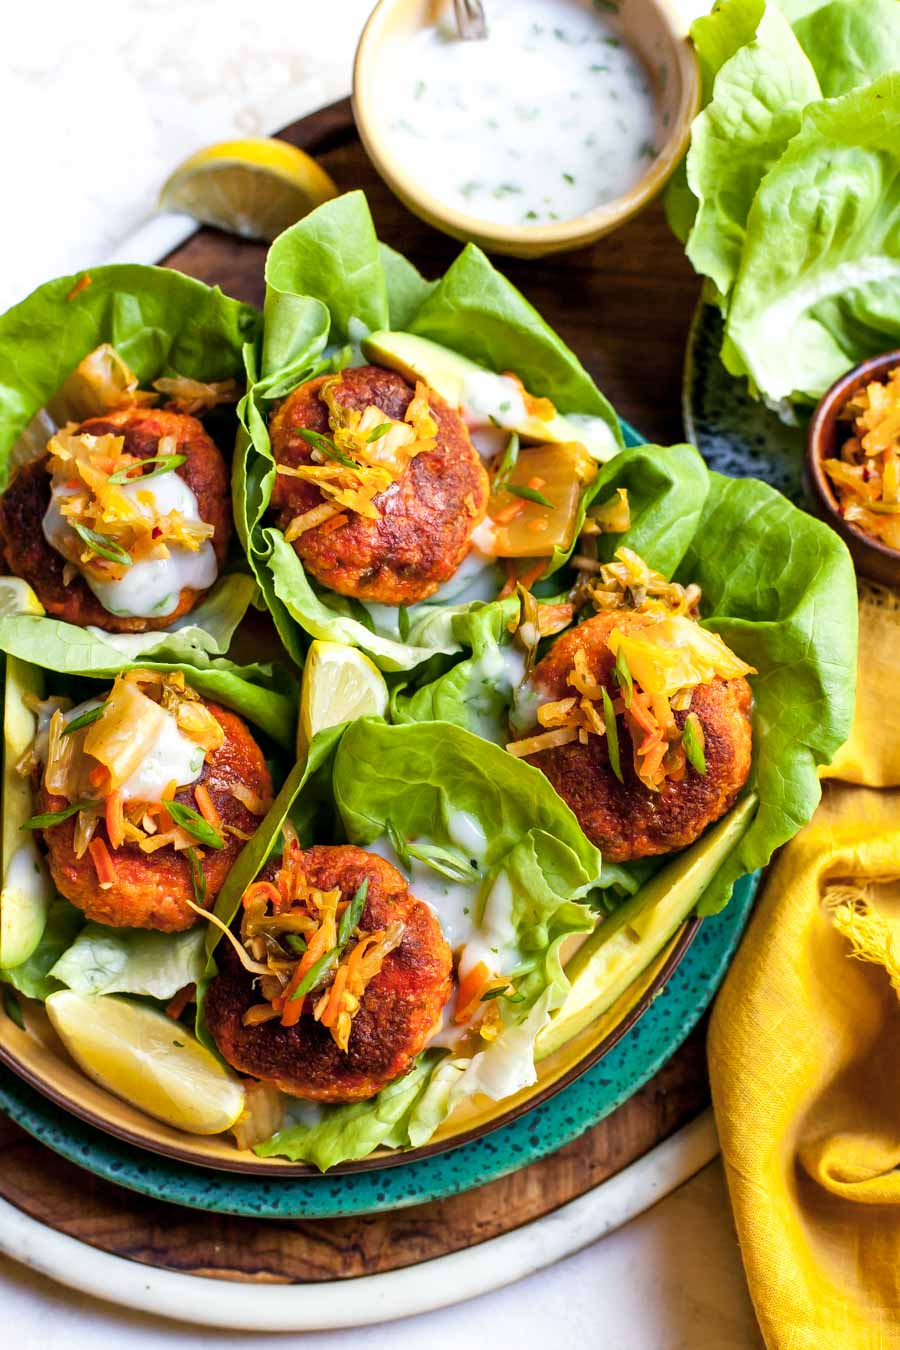 Curried Salmon Lettuce Wraps with Kimchi and Yogurt